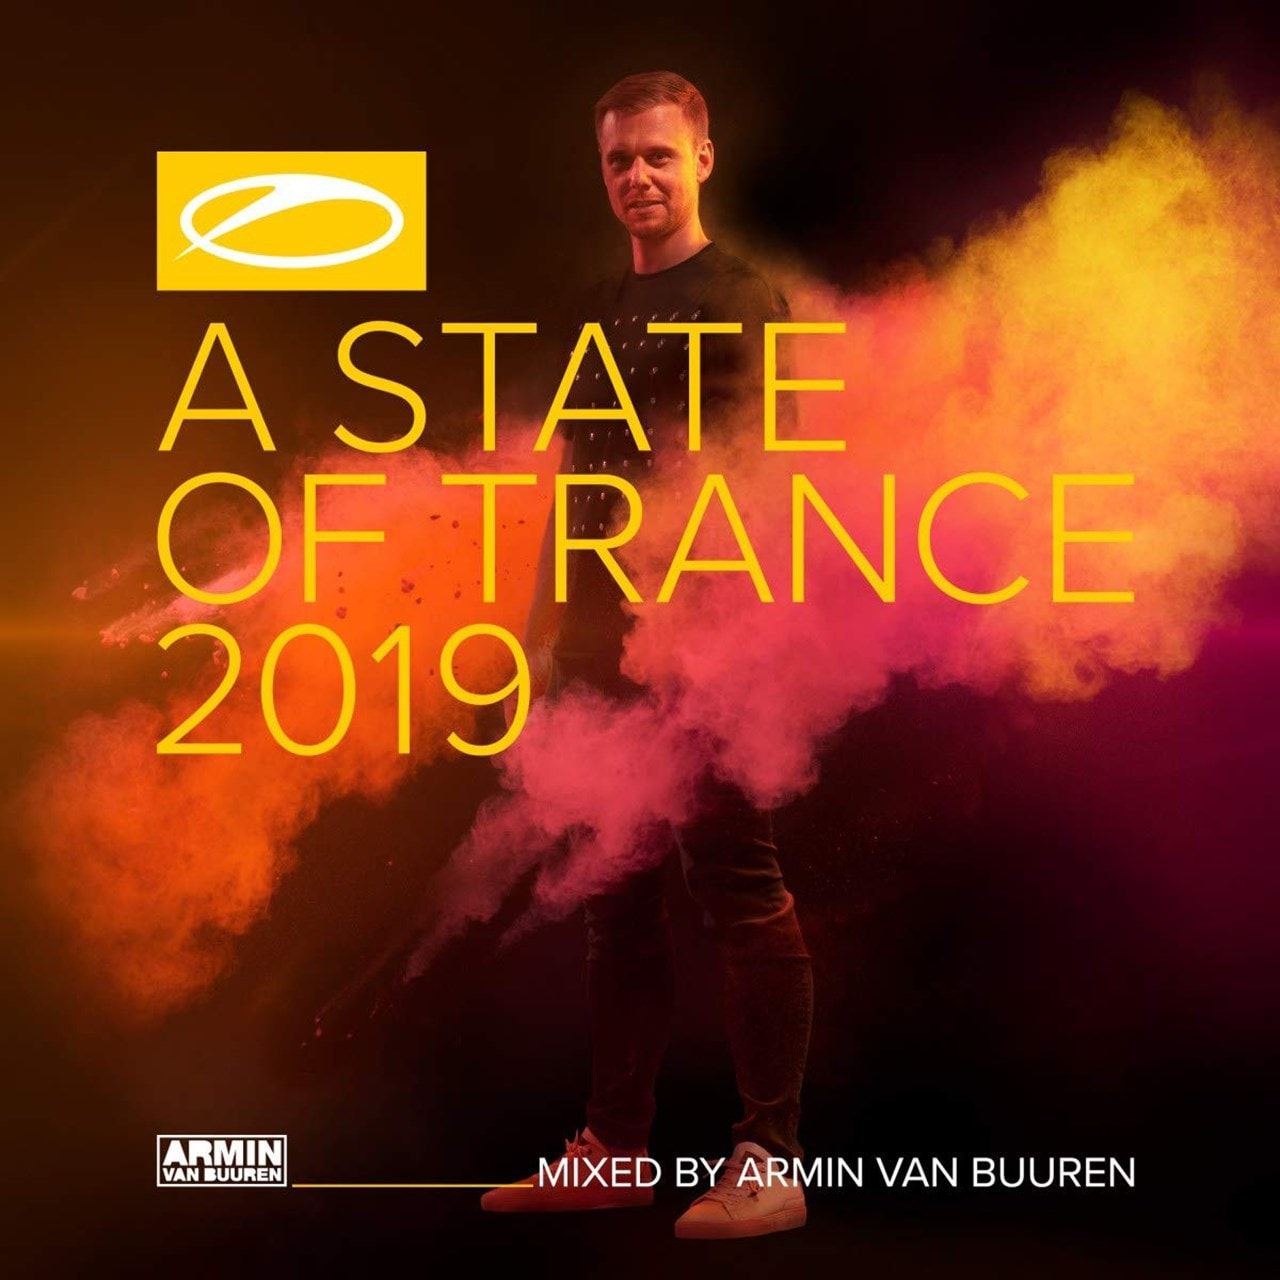 A State of Trance 2019 - 1